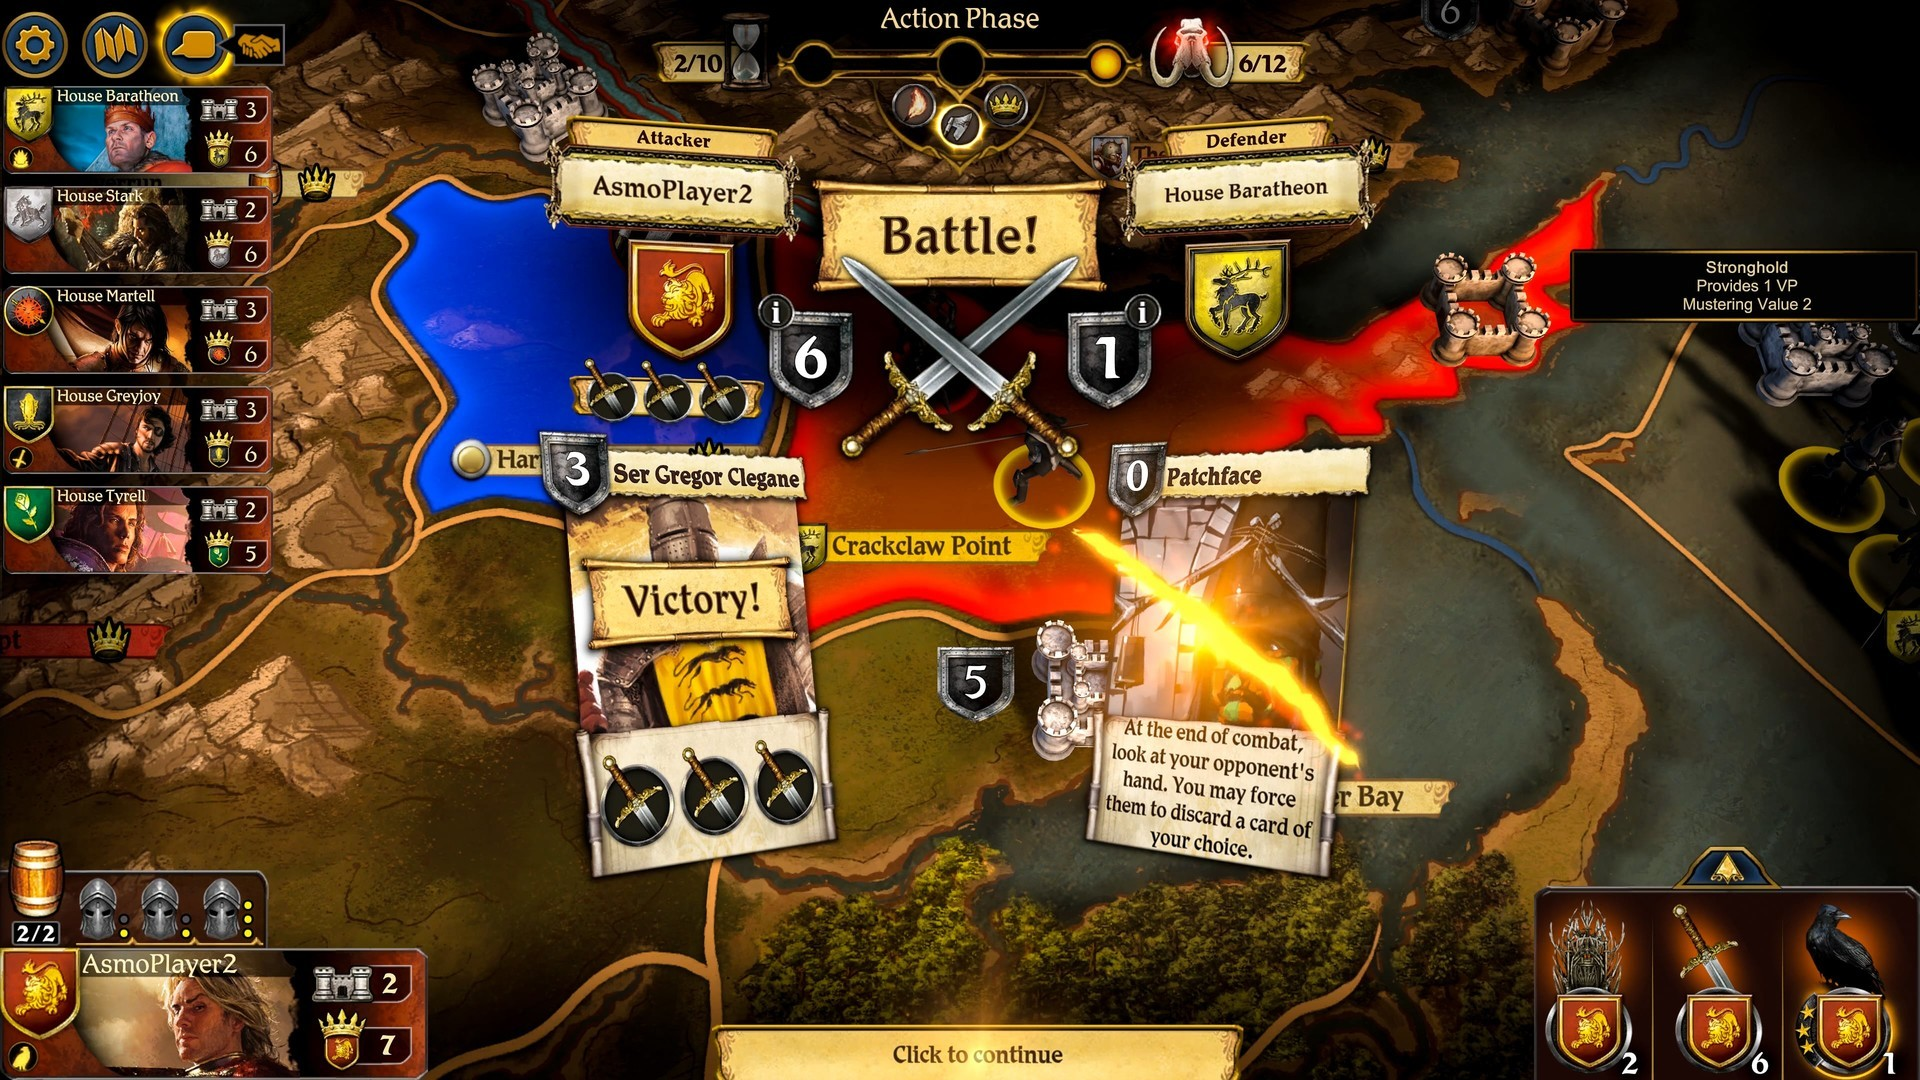 The Game Of Thrones Board Game Is Coming To Pc Later This Year Pc Gamer